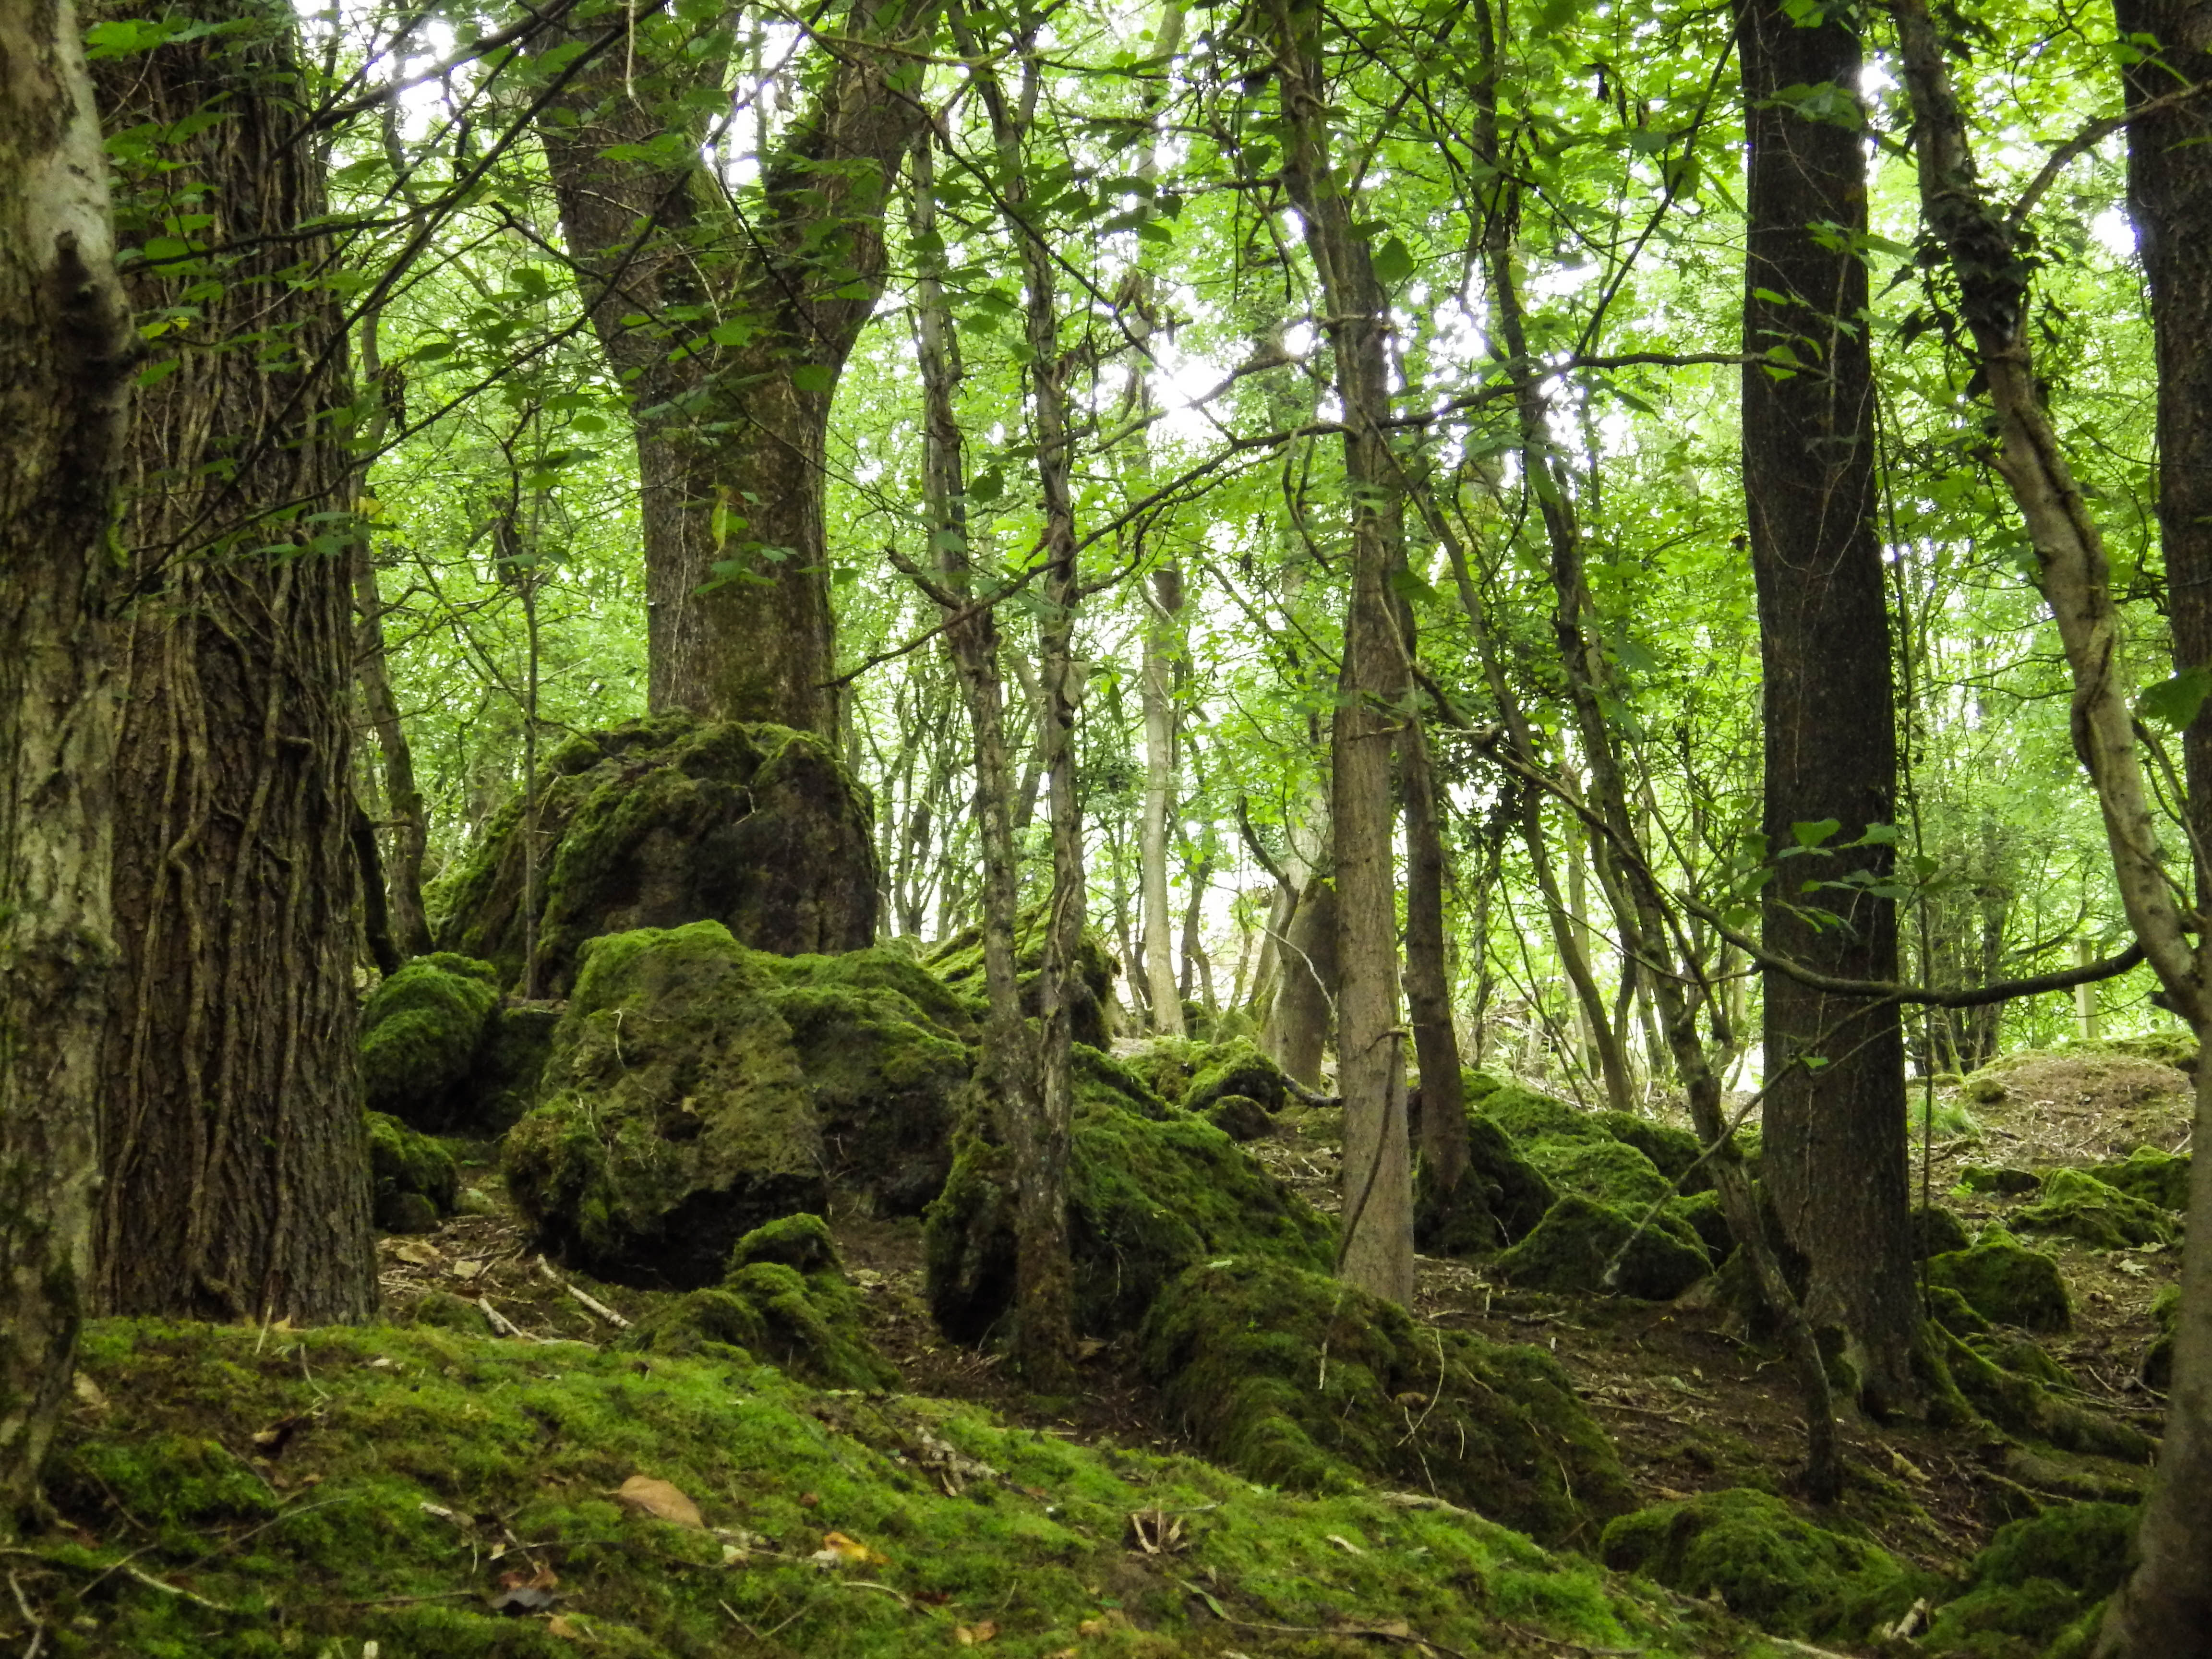 Moss covered boulders and trees